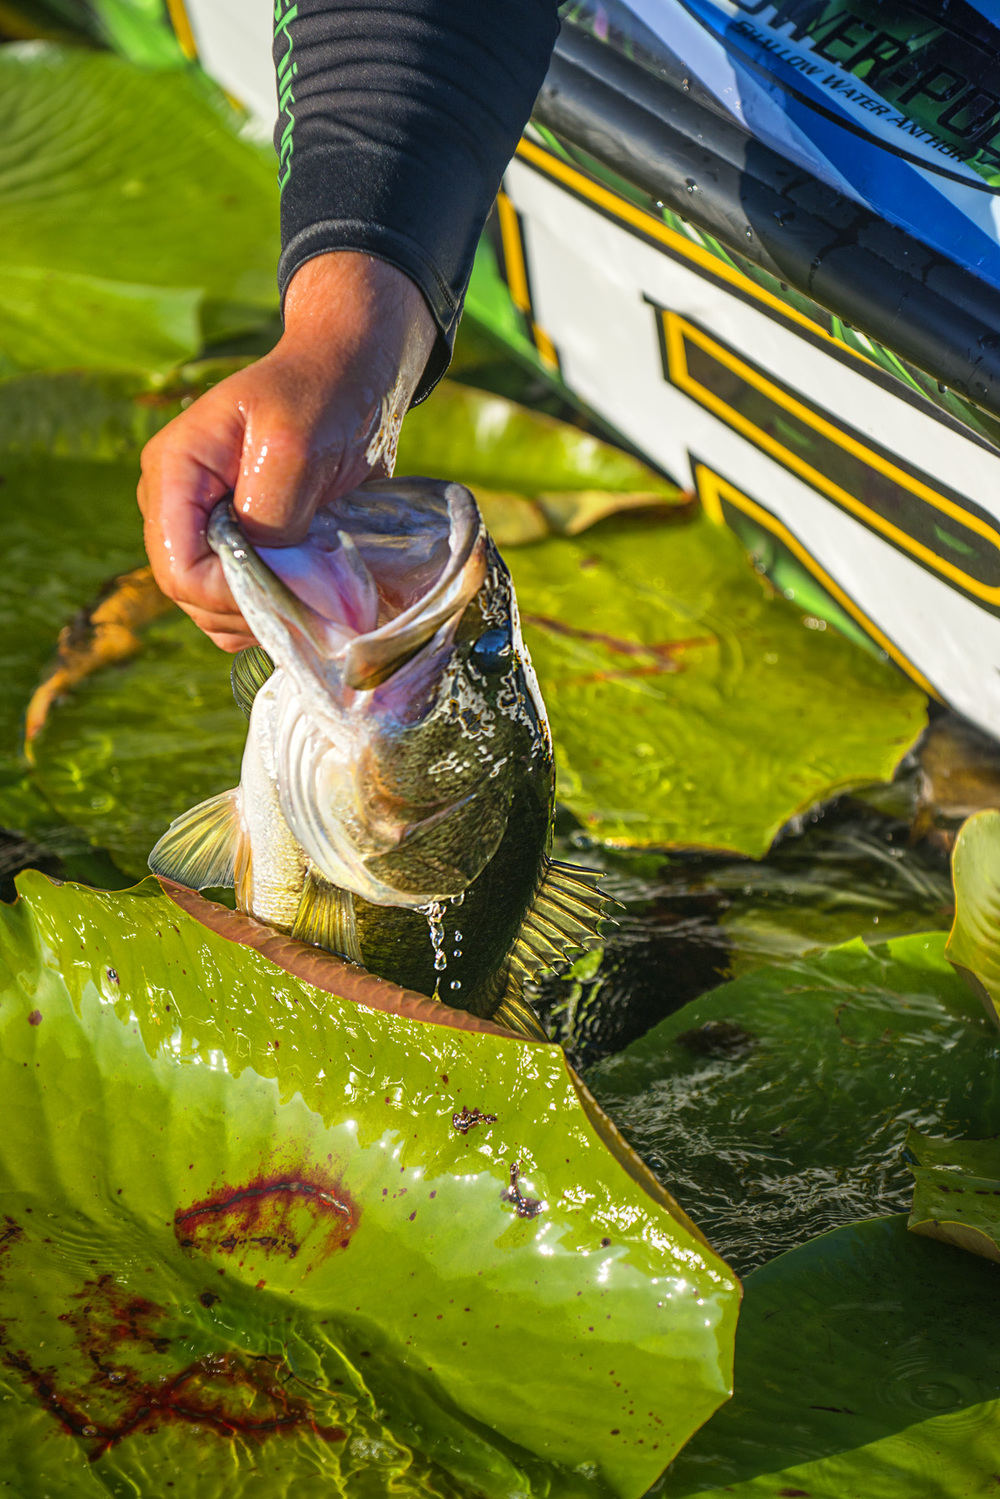 Find the right grass mixtures, and you can really load the boat with some natural lake bass.